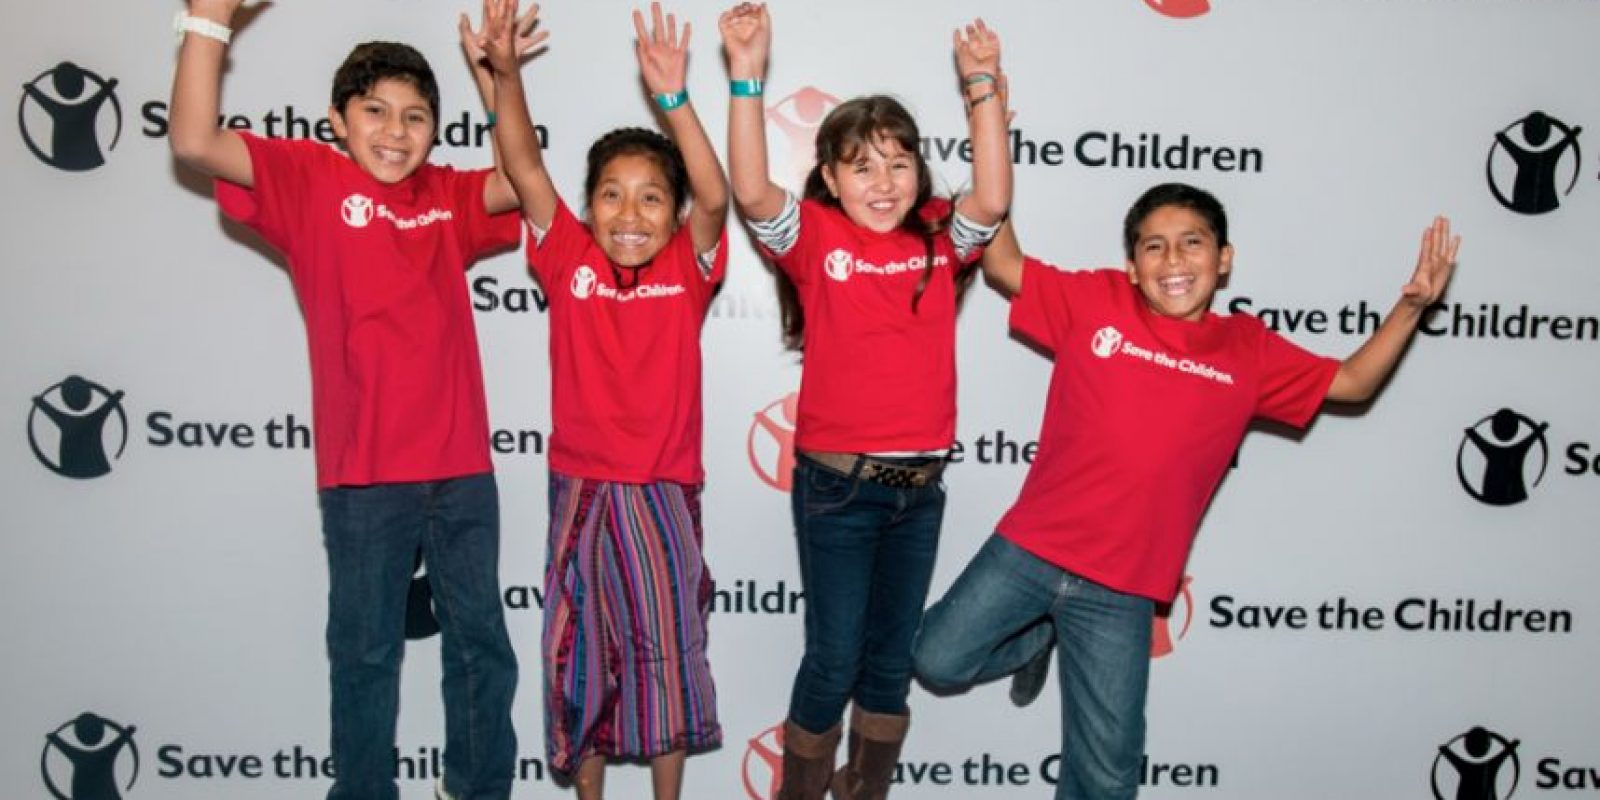 Foto: Save the Children